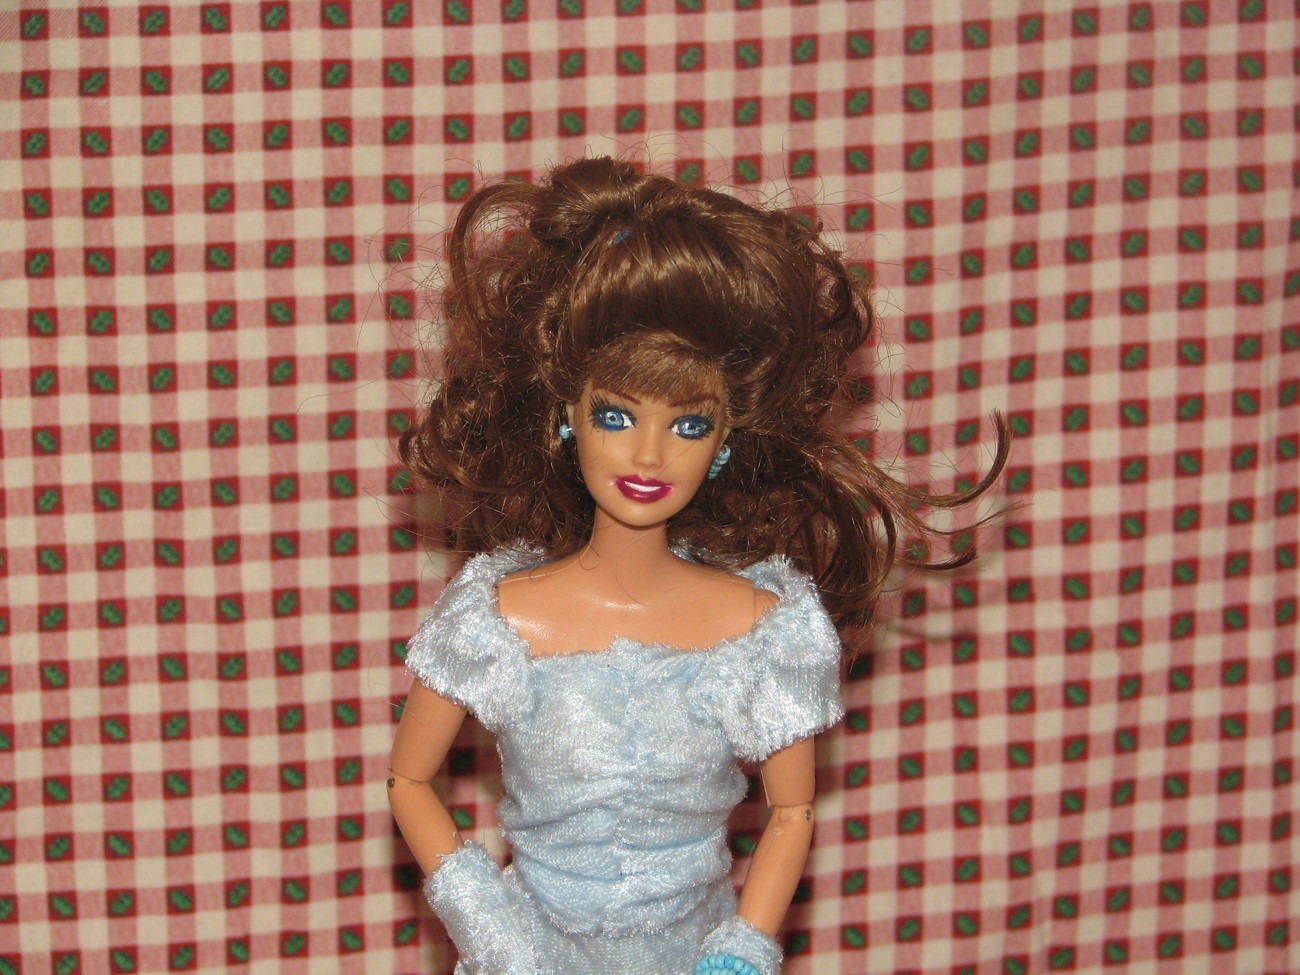 Fashion Doll Delwynn OOAK Barbie